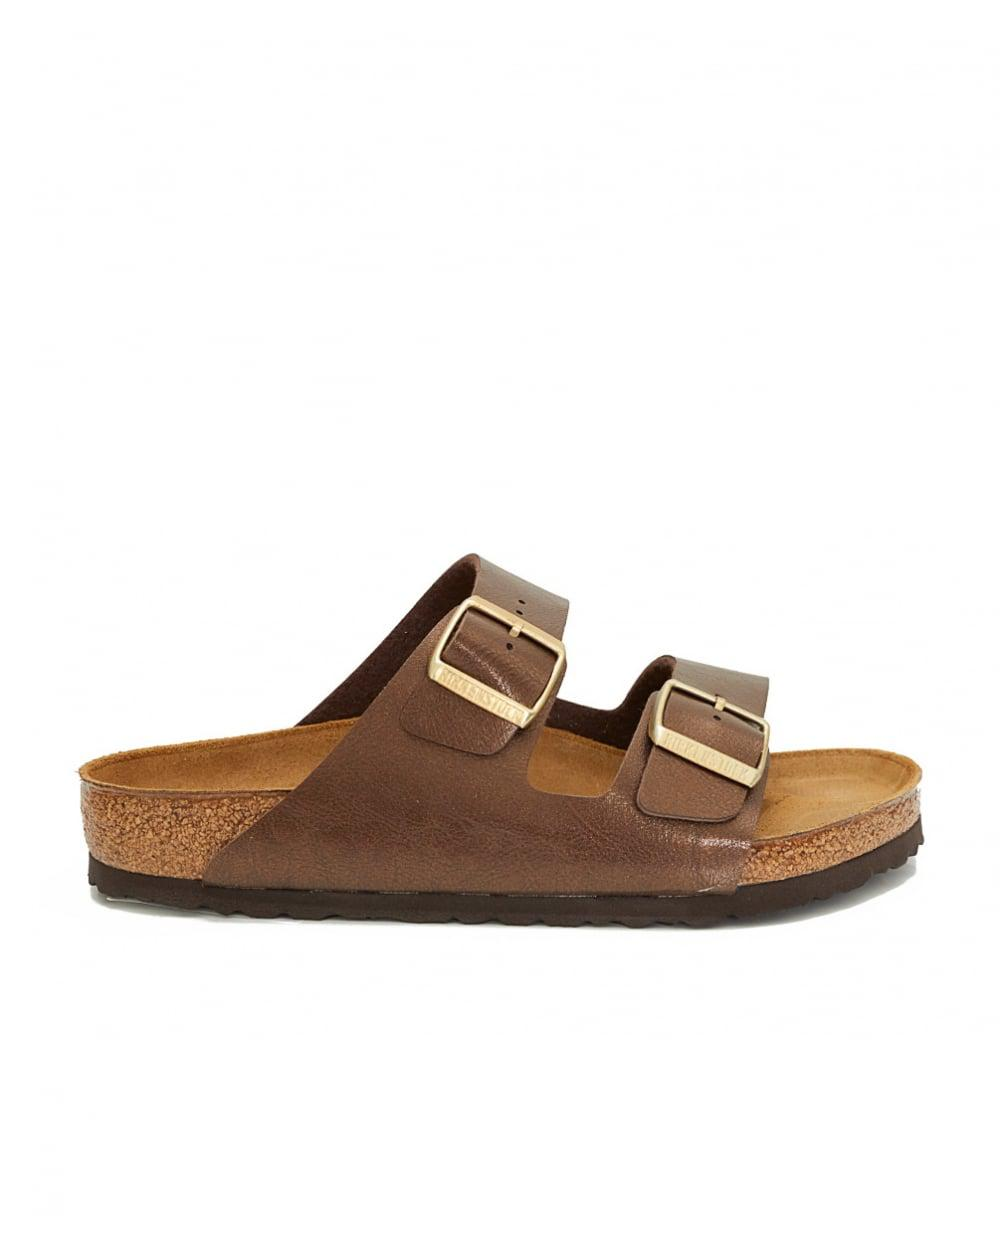 b1950187feb3 Lyst - Birkenstock Arizona Regular Two Strap Sandals in Brown